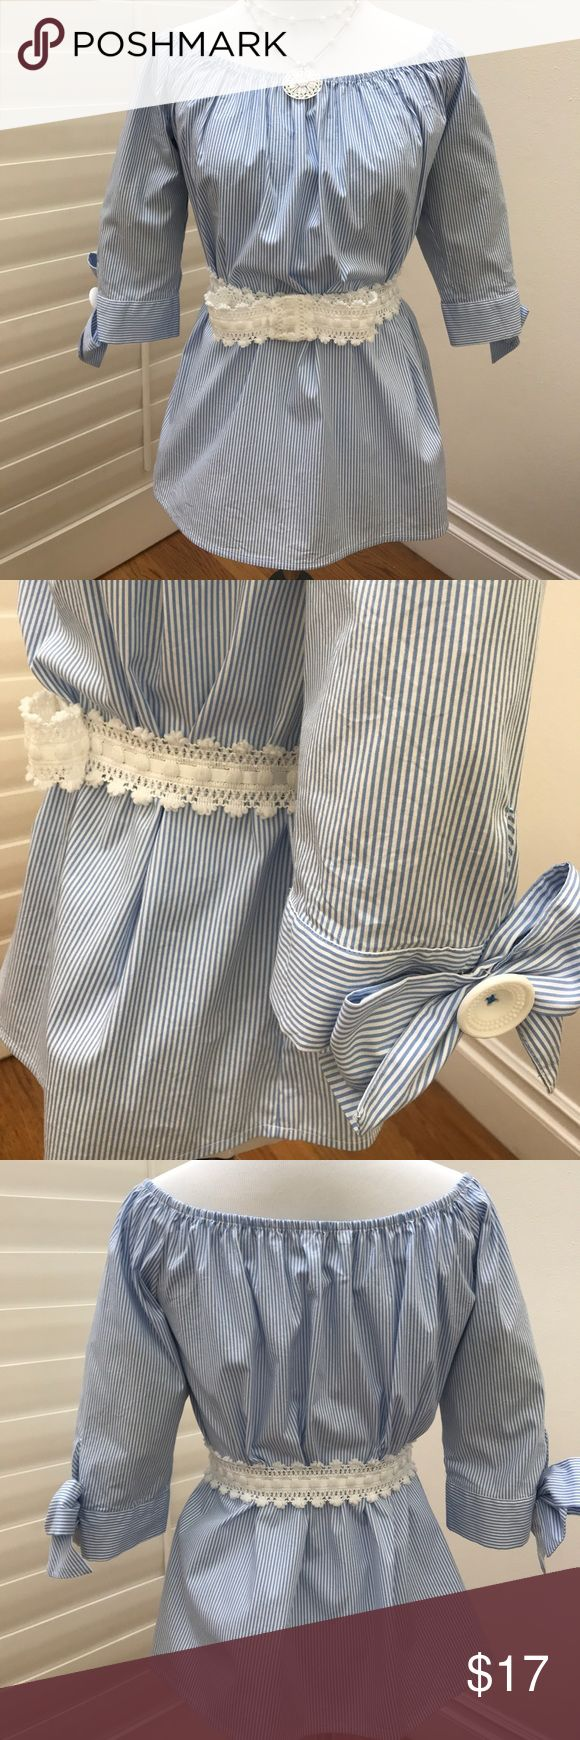 "FOREVER 21 Blue and White Top FOREVER 21 blue and white striped top, off the shoulder, size S, overall length 20"", sleeve length 15"", beautiful bow and big white button on sleeve, belt and necklace not included, new Tops"